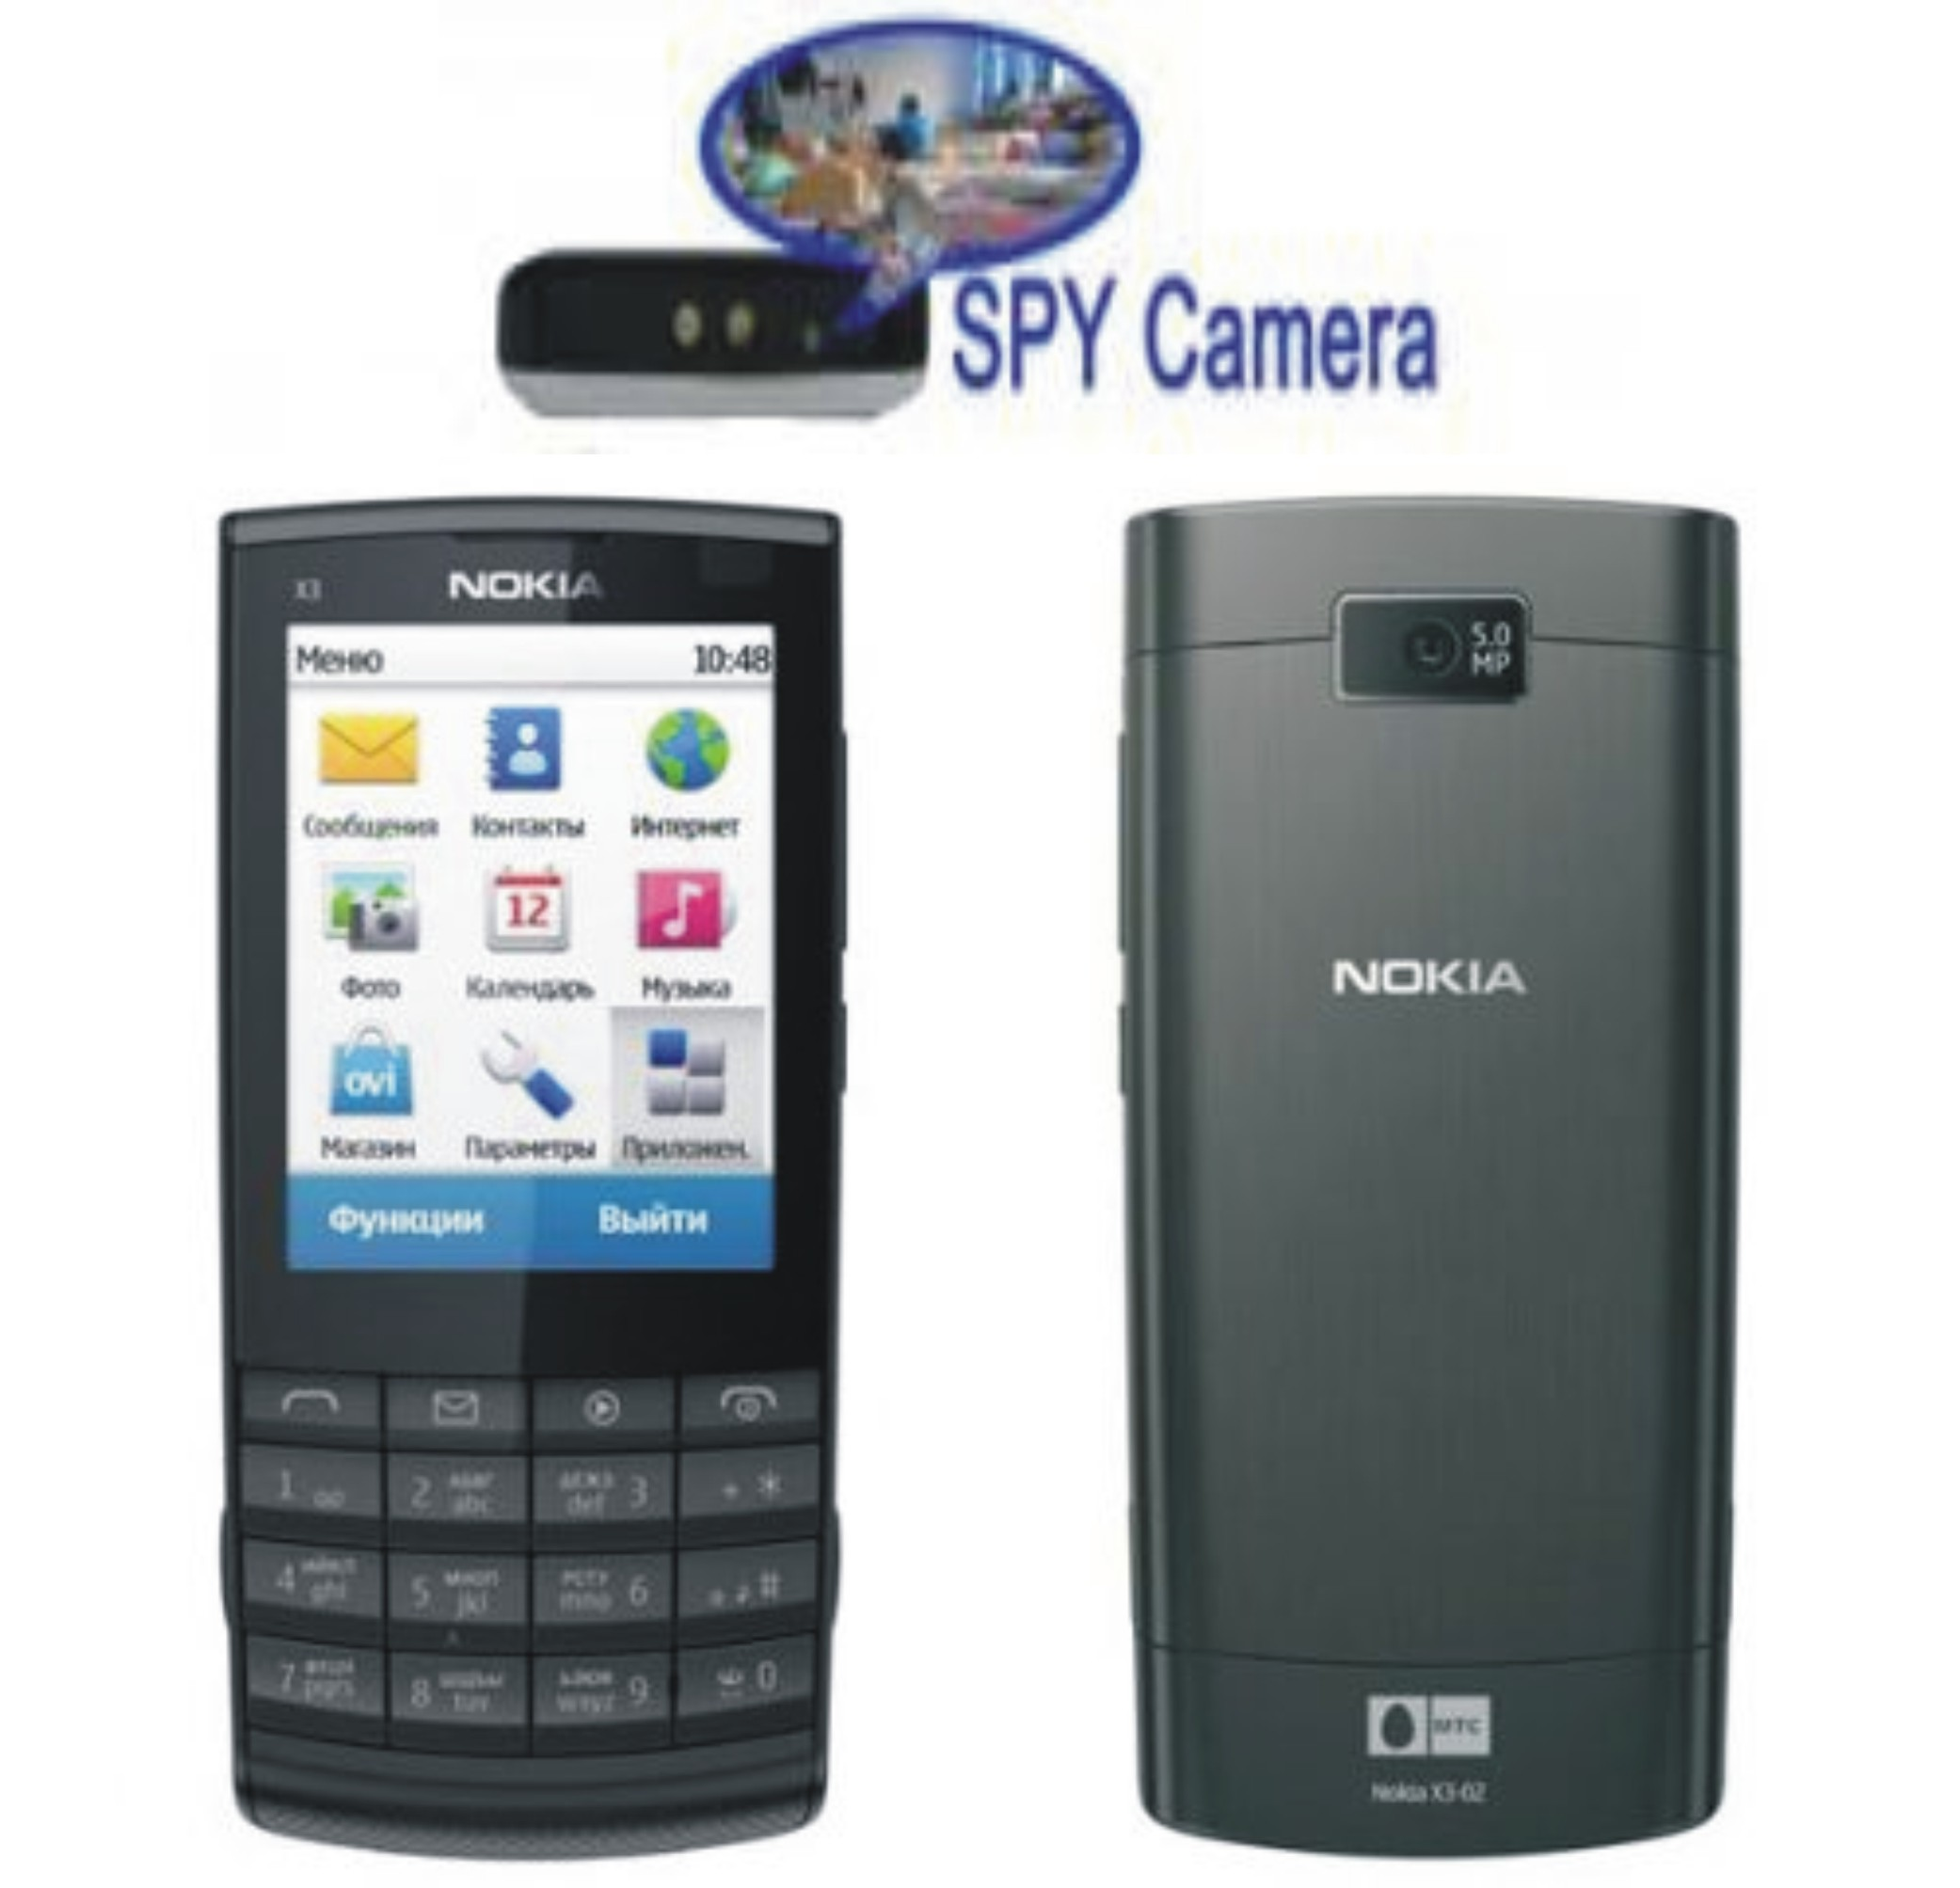 Spy Camera In Nokia Phone Touch Screen In Pali